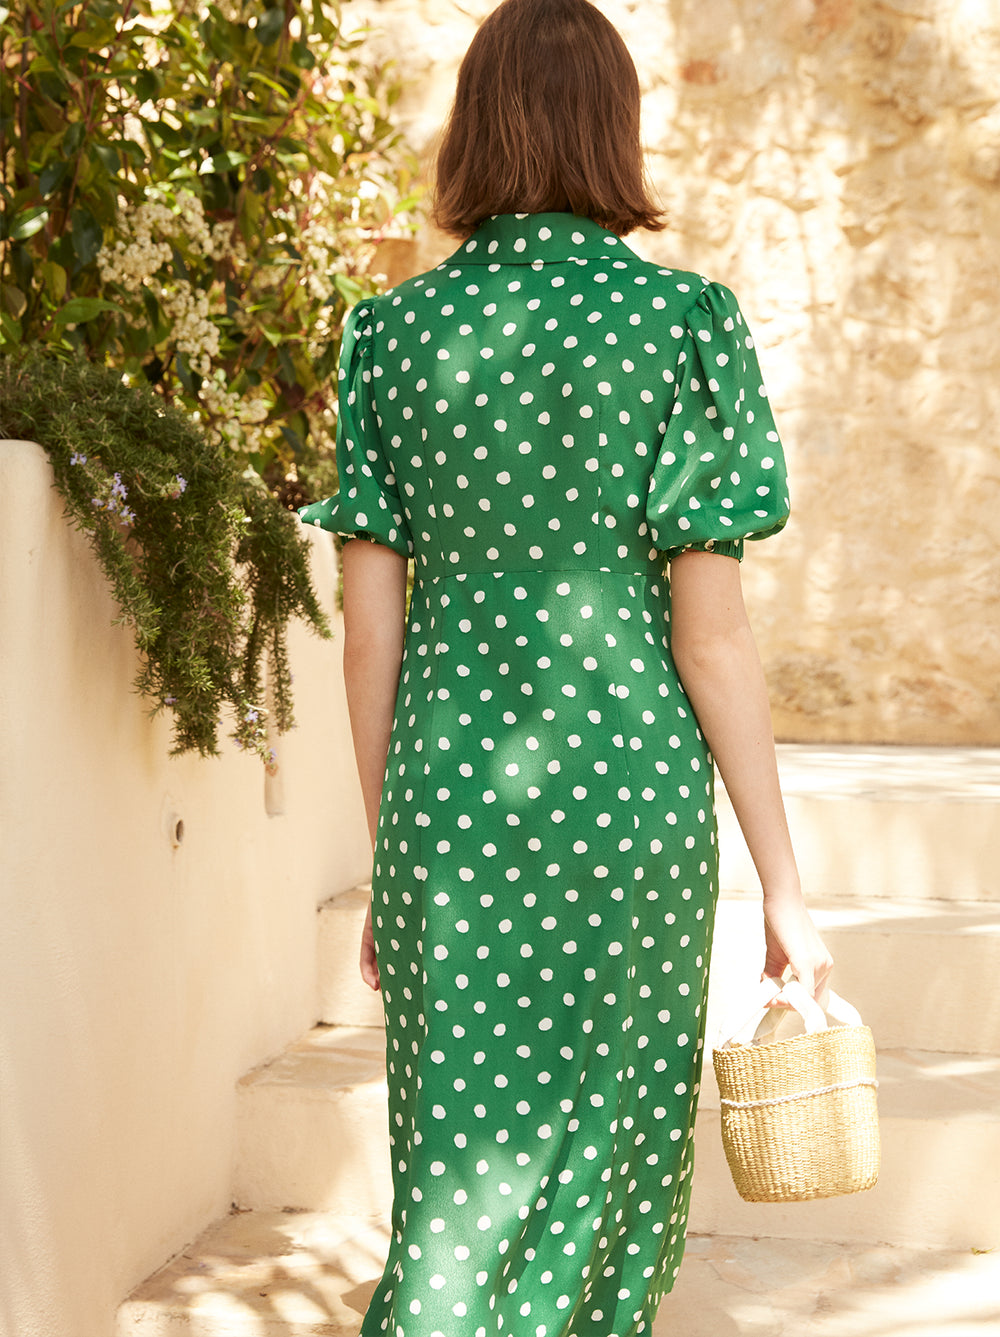 Siena Polka Dot Tea Dress